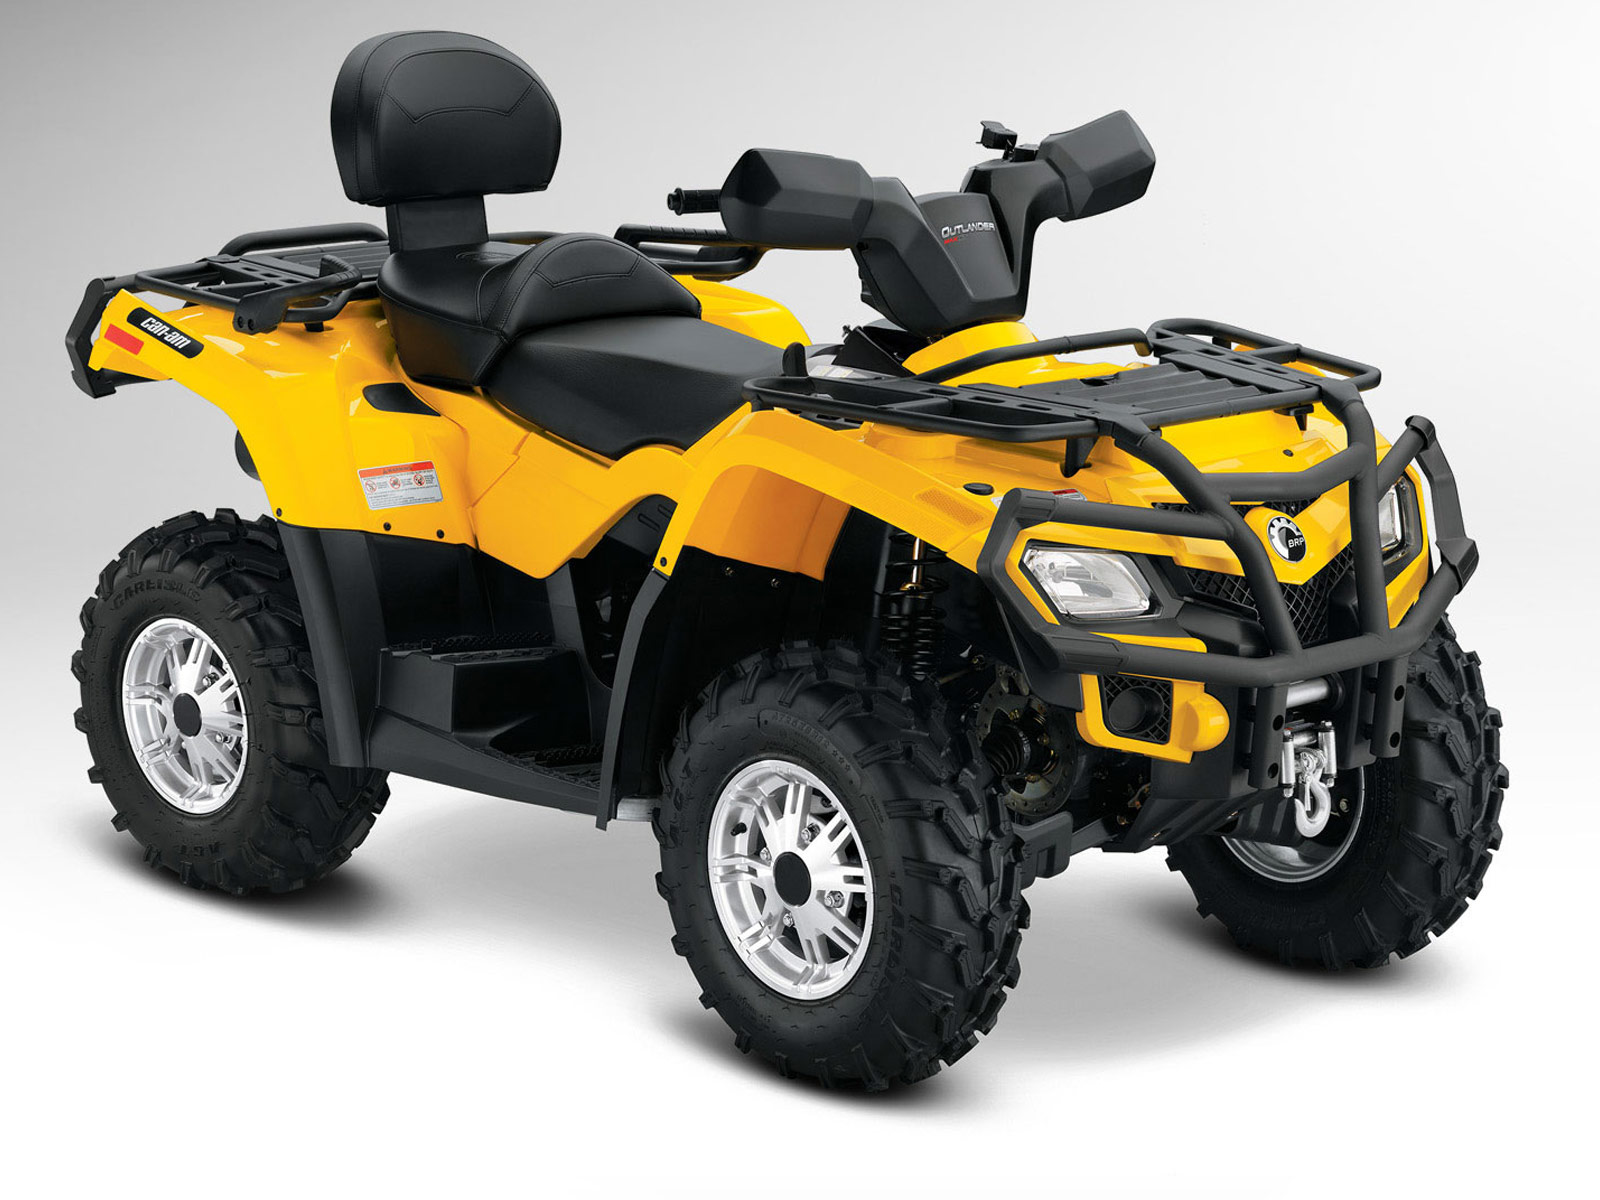 hight resolution of max atv wiring diagram wiring librarycan am atv pictures 2012 outlander max400xt rh atv pictures blogspot